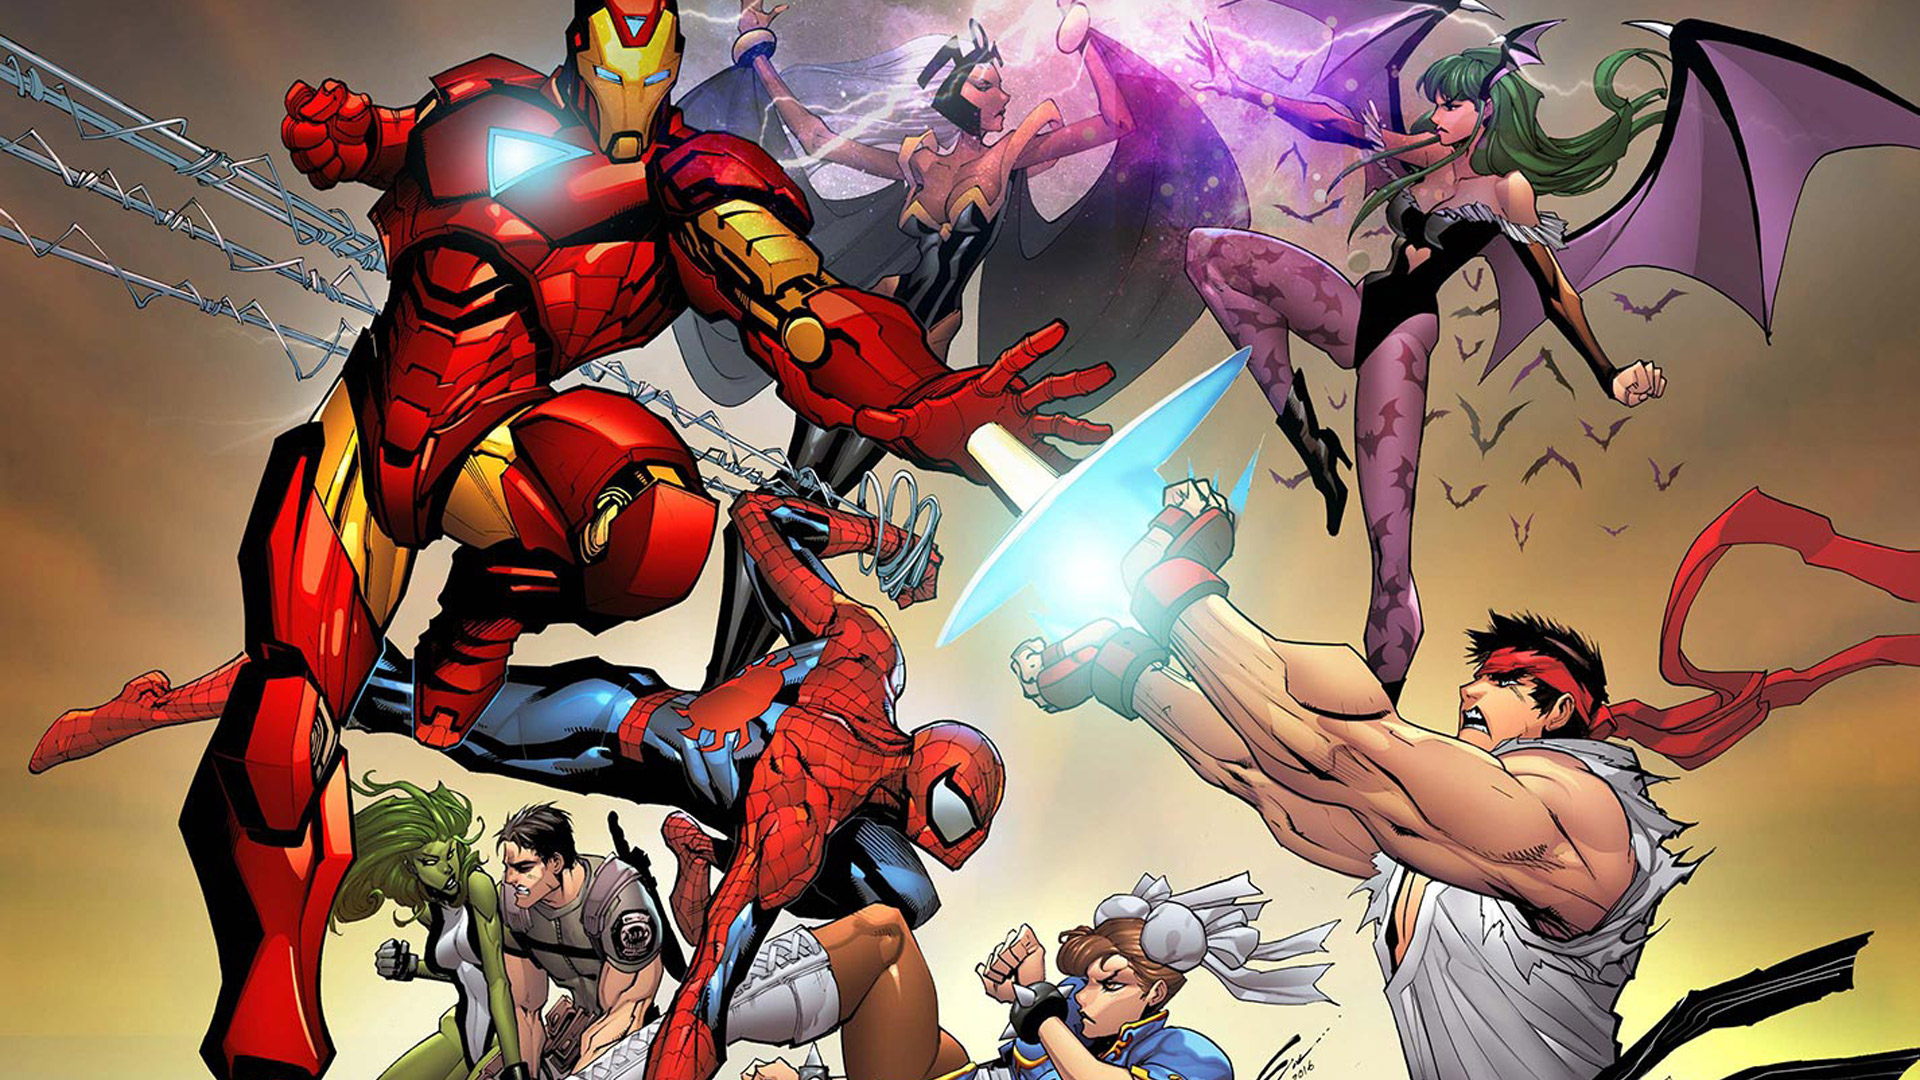 Free Marvel vs. Capcom 3: Fate of Two Worlds Wallpaper in 1920x1080